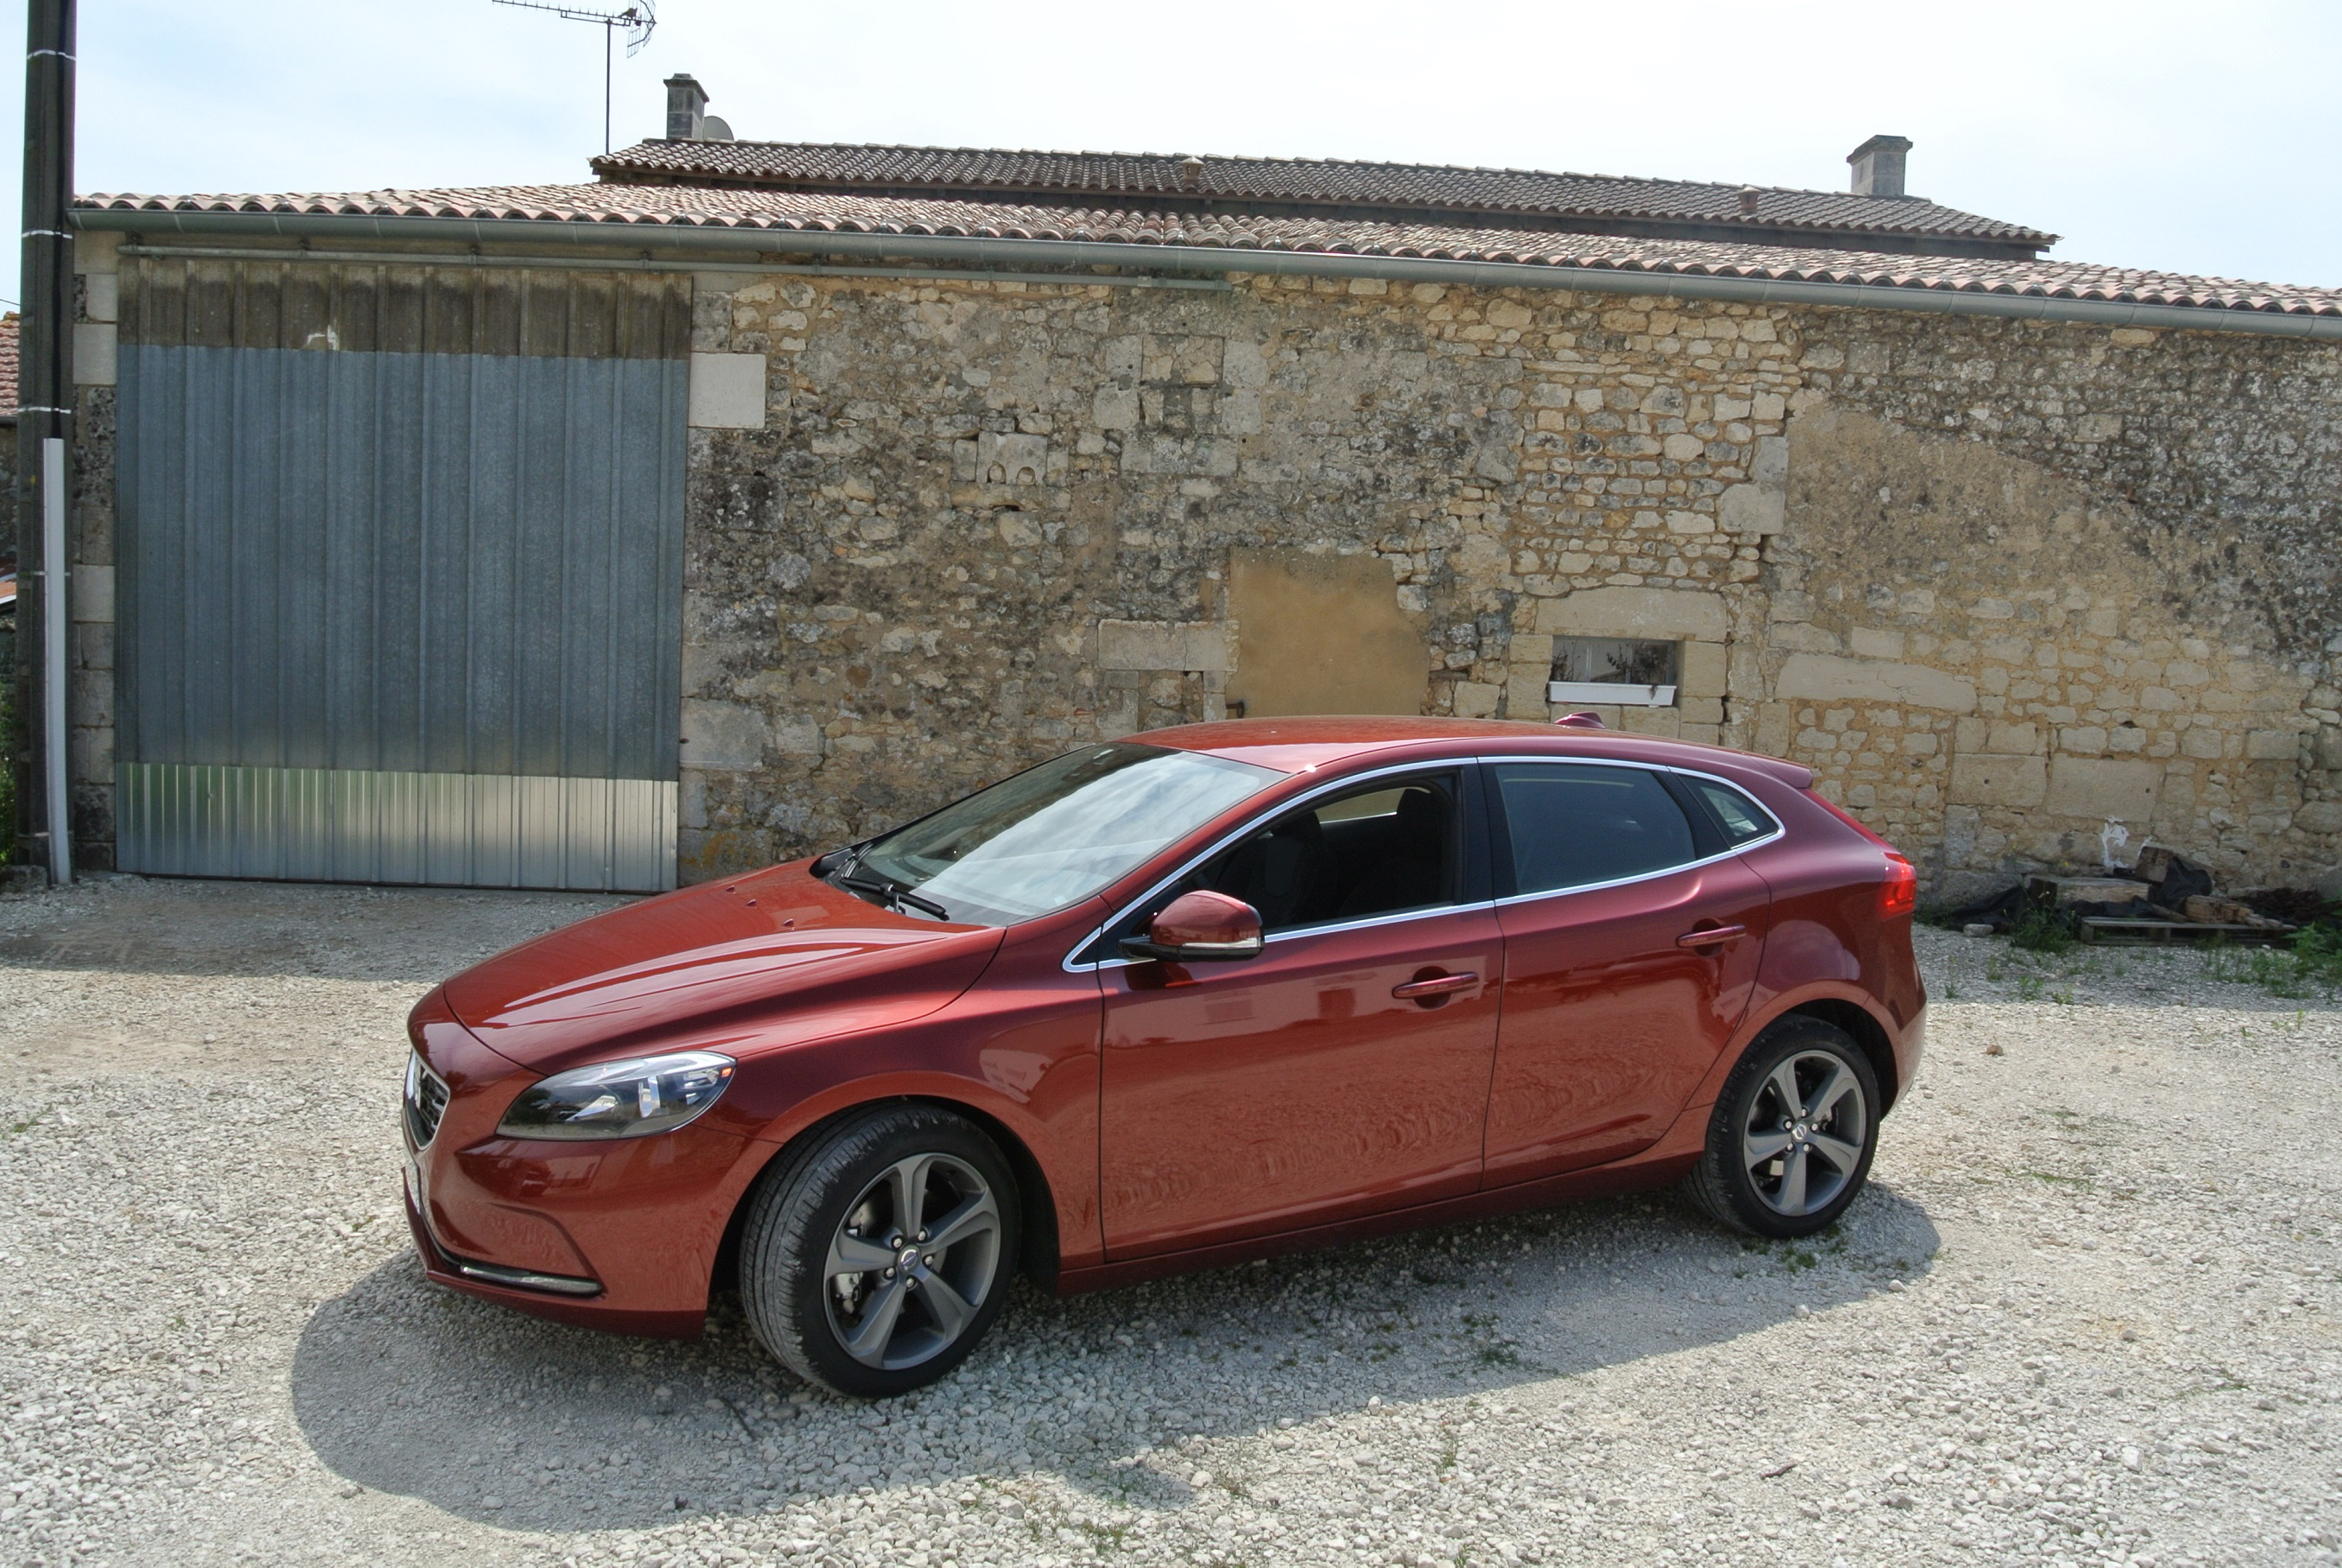 volvo v40 t3 rouge flamenco pr sentation page 2 volvo forum marques. Black Bedroom Furniture Sets. Home Design Ideas